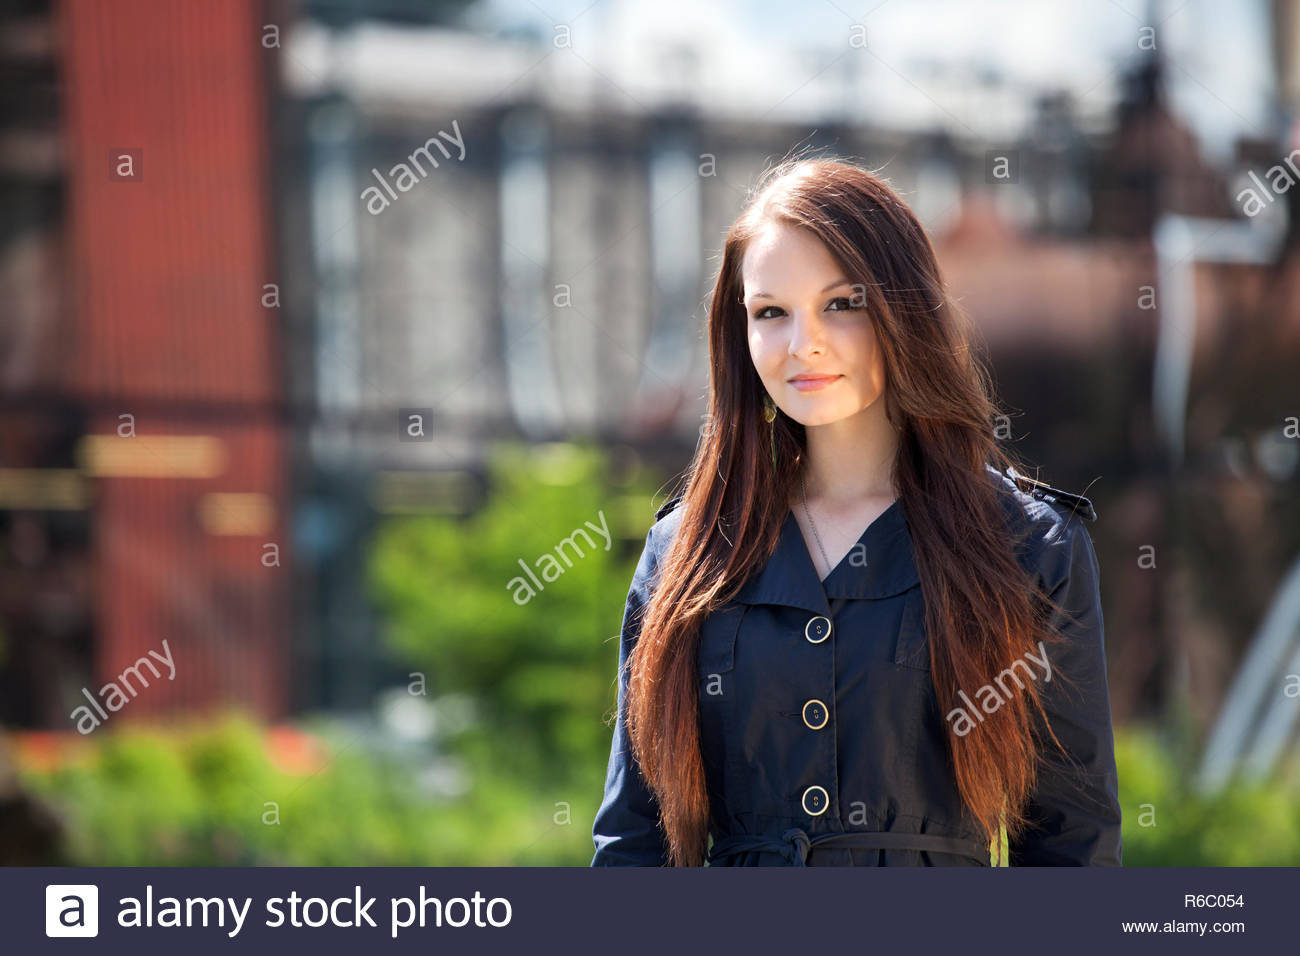 Portrait of young brunette woman in nature, in front of industrial background. Stock Photo